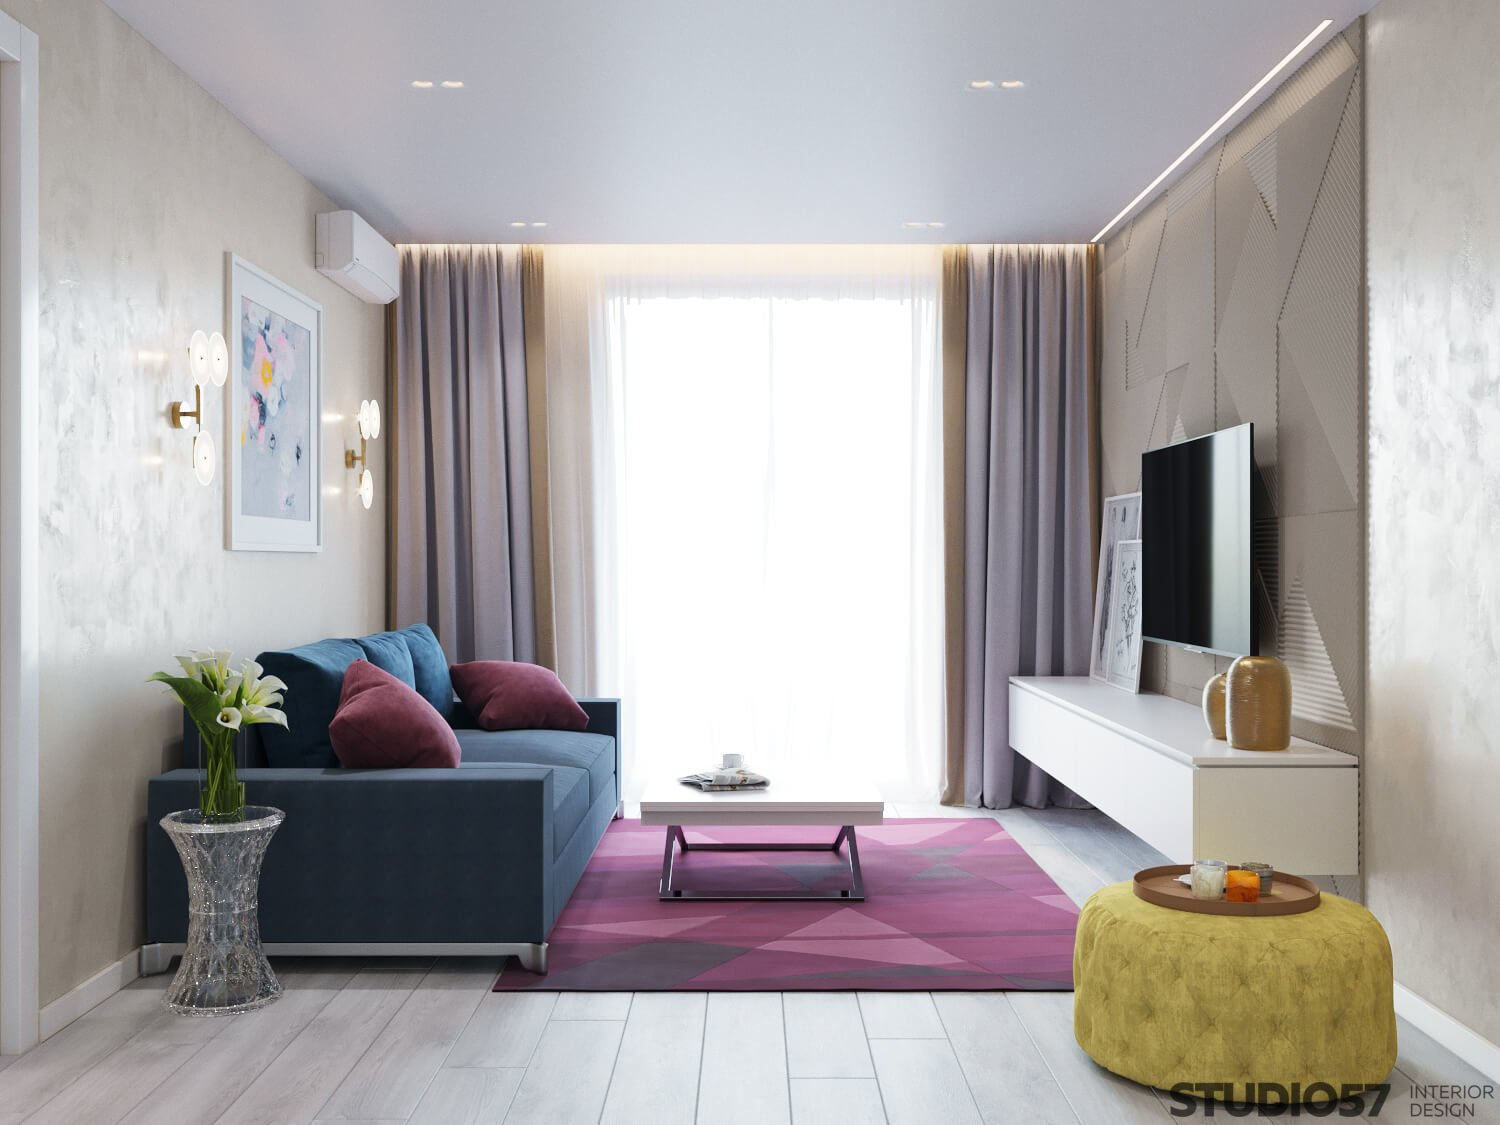 Blue and pink shades in the living room